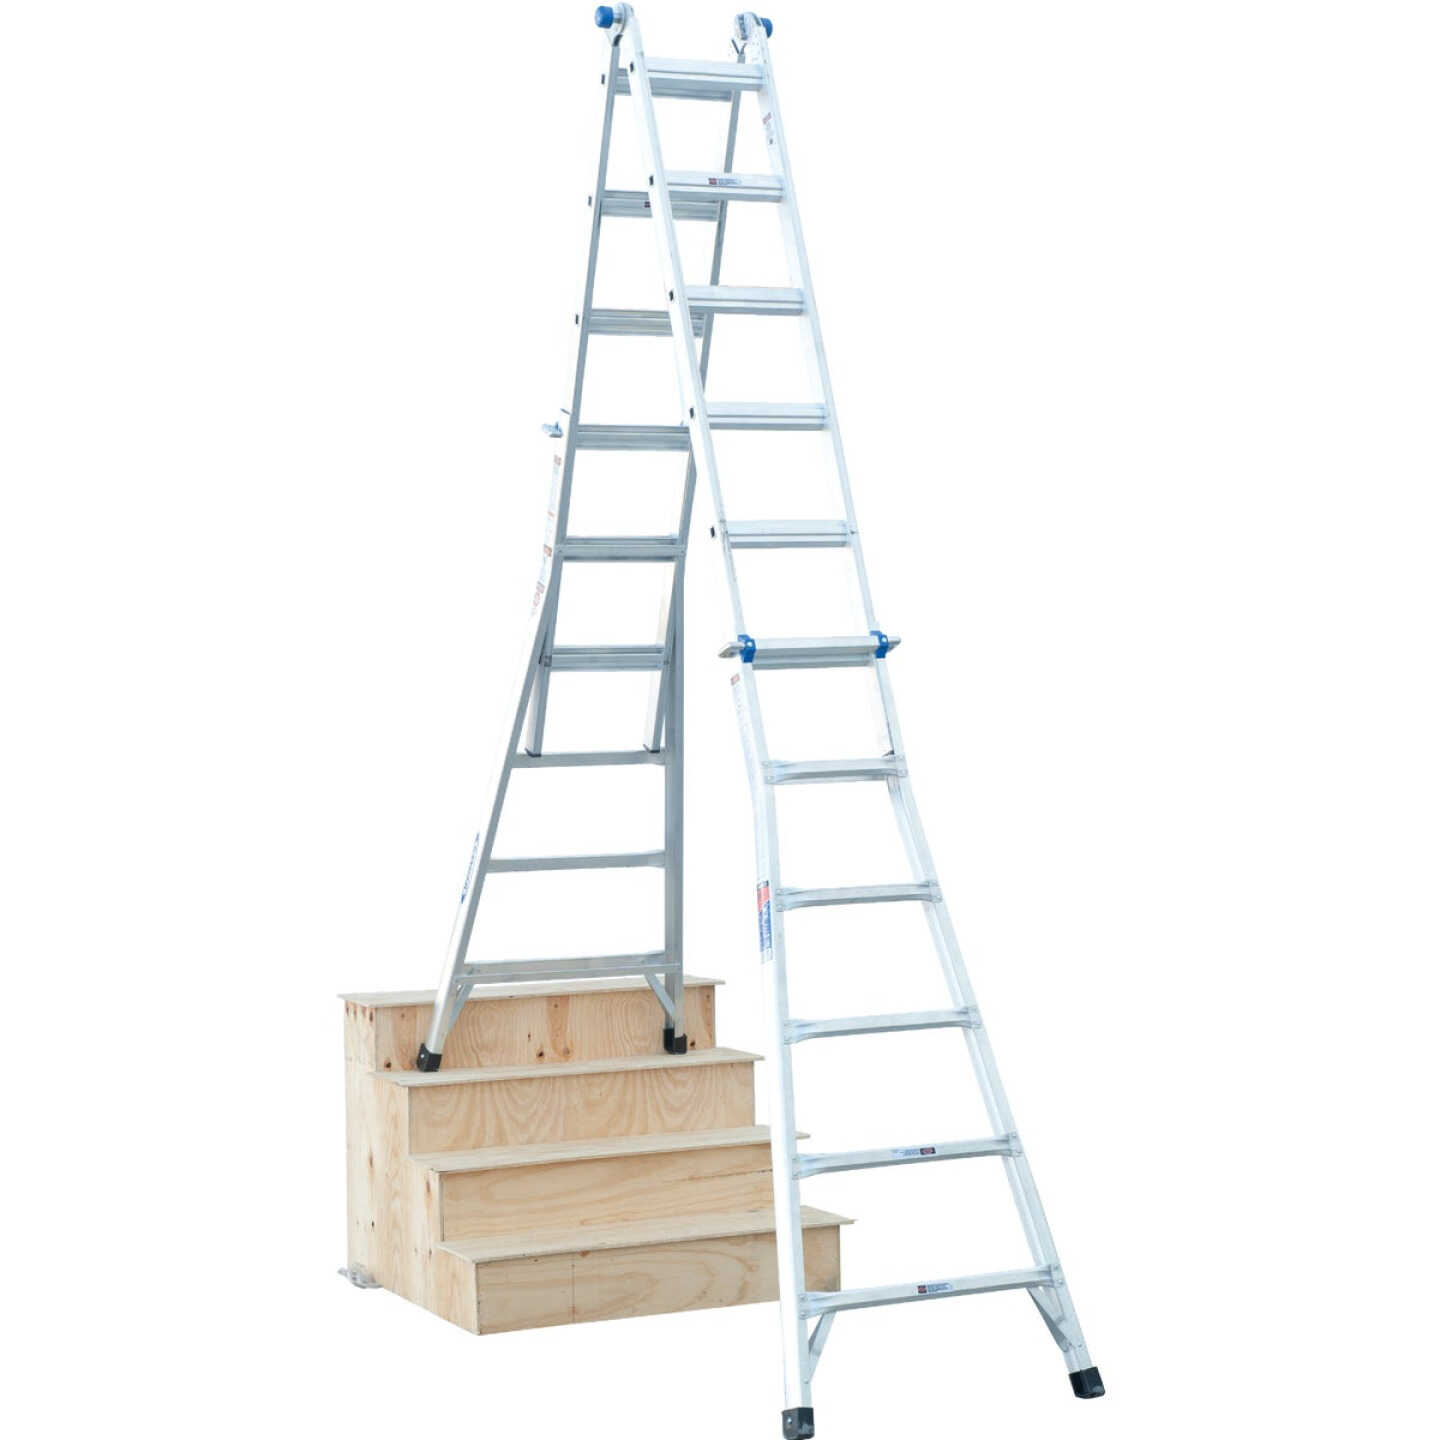 Werner 26 Ft. Aluminum Multi-Position Telescoping Ladder with 300 Lb. Load Capacity Type IA Ladder Rating Image 8